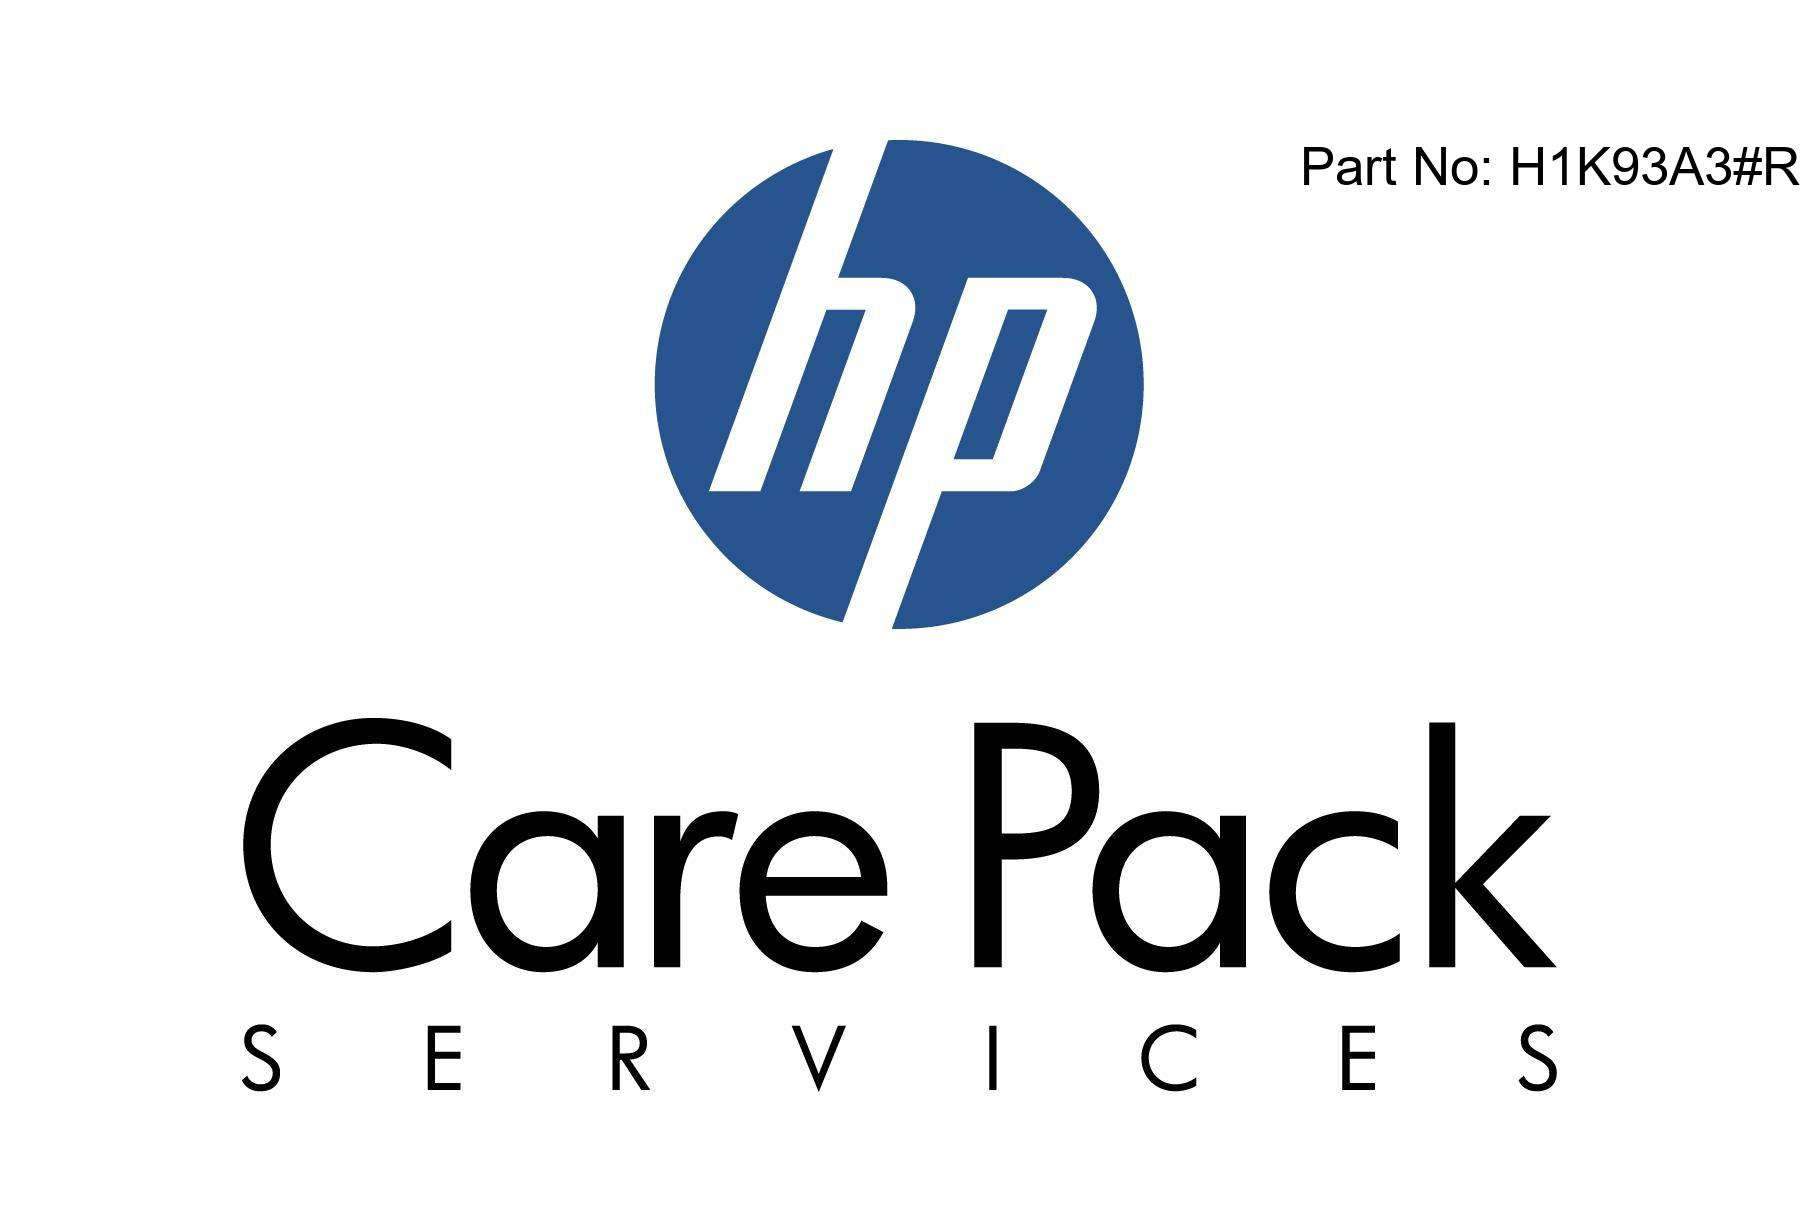 Proactive Care 24x7 Service with Defective Media Retention - Extended service agreement - parts and labor - 3 years - on-site - 24x7 - response time: 4 h - for P/N: K2R79AR K2R81AR K2R82AR K2R83AR K2R84AR M0S99AR M0T00AR M0T01AR M0T02AR